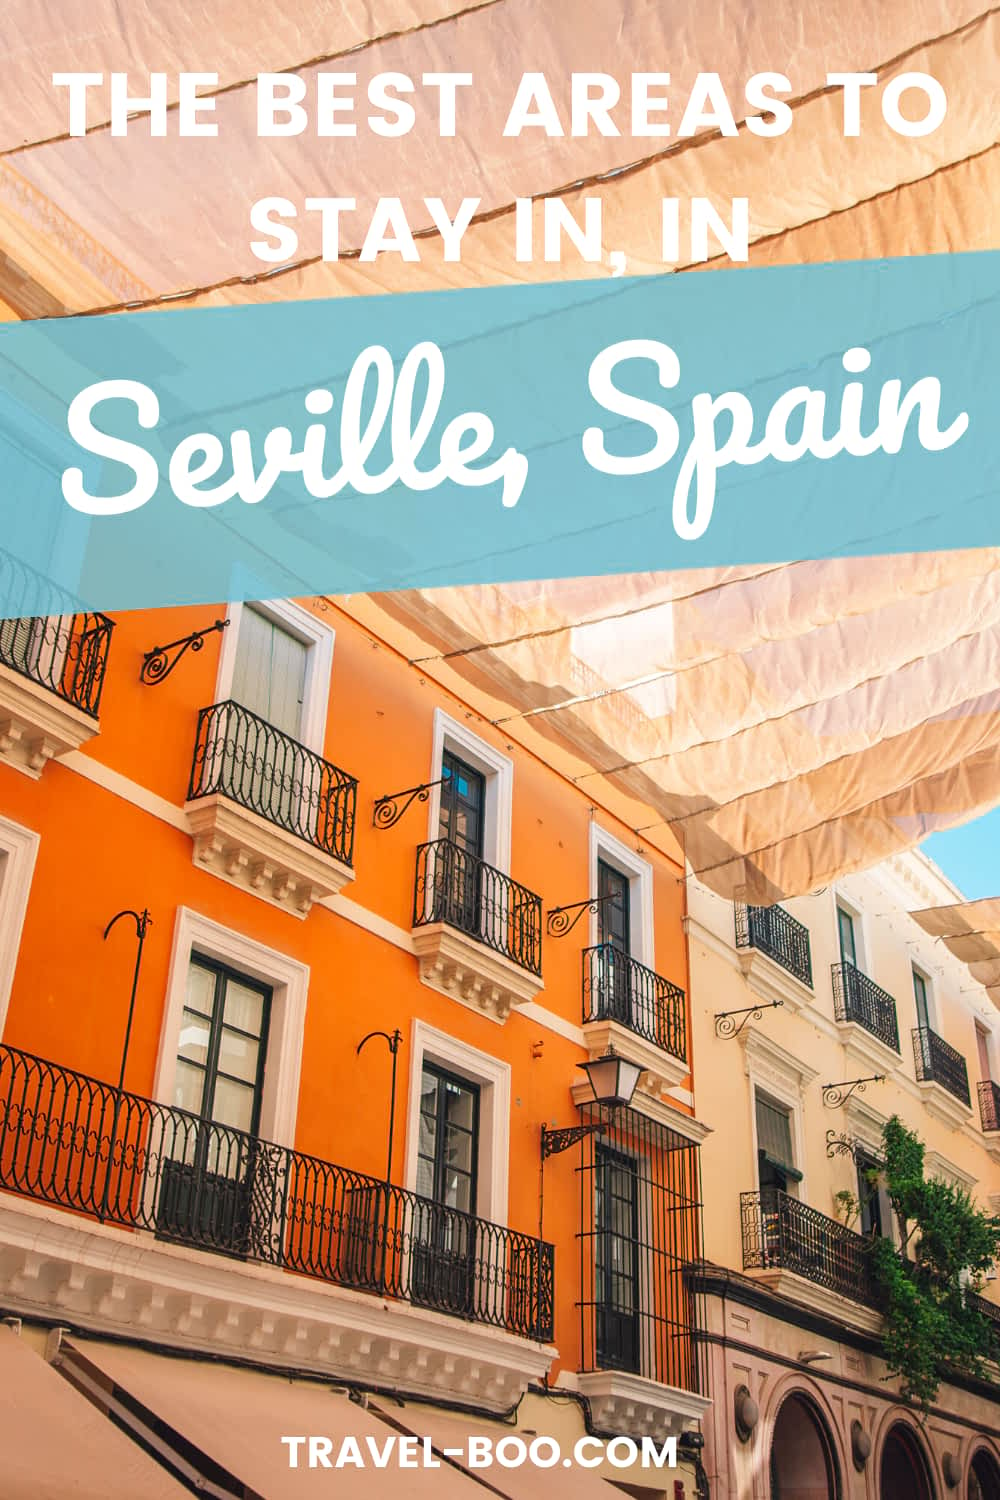 A Comprehensive Guide on Where to Stay in Seville, Spain! Where to stay Seville, Seville Travel, Seville Spain, Seville Travel Guide, Seville Travel Tips, Sevilla Spain, Sevilla Travel, Spain Travel Guide, Spain Travel Tips. #sevilletravel #sevillespain #spain #seville